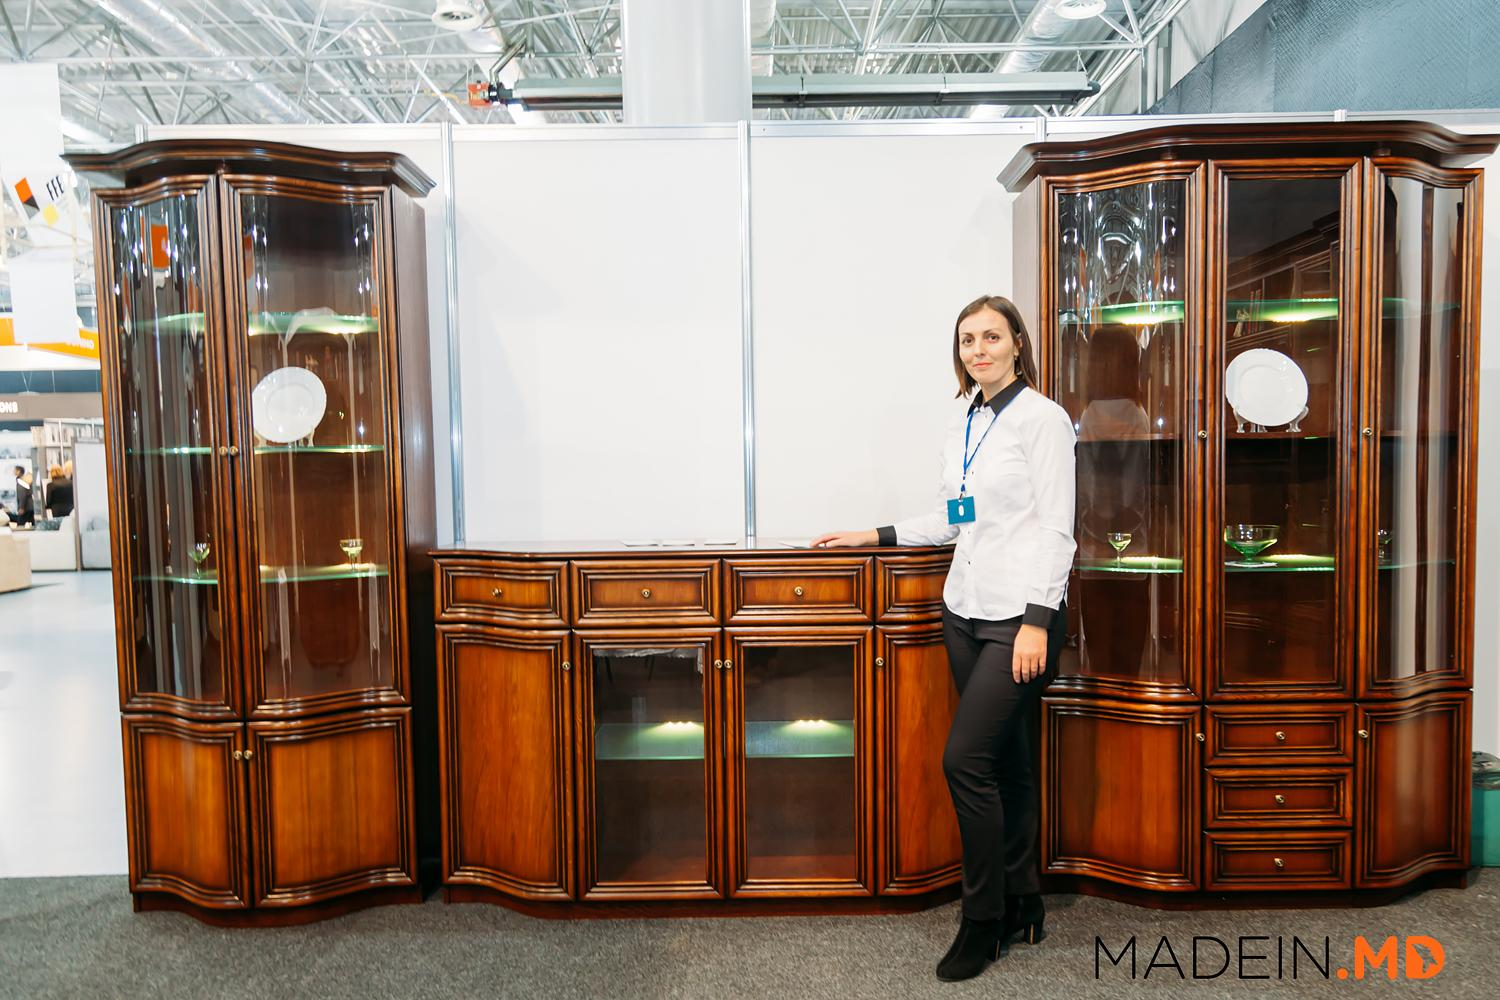 Photogallery From Furniture Fashion Expo At Moldexpo In Chisinau